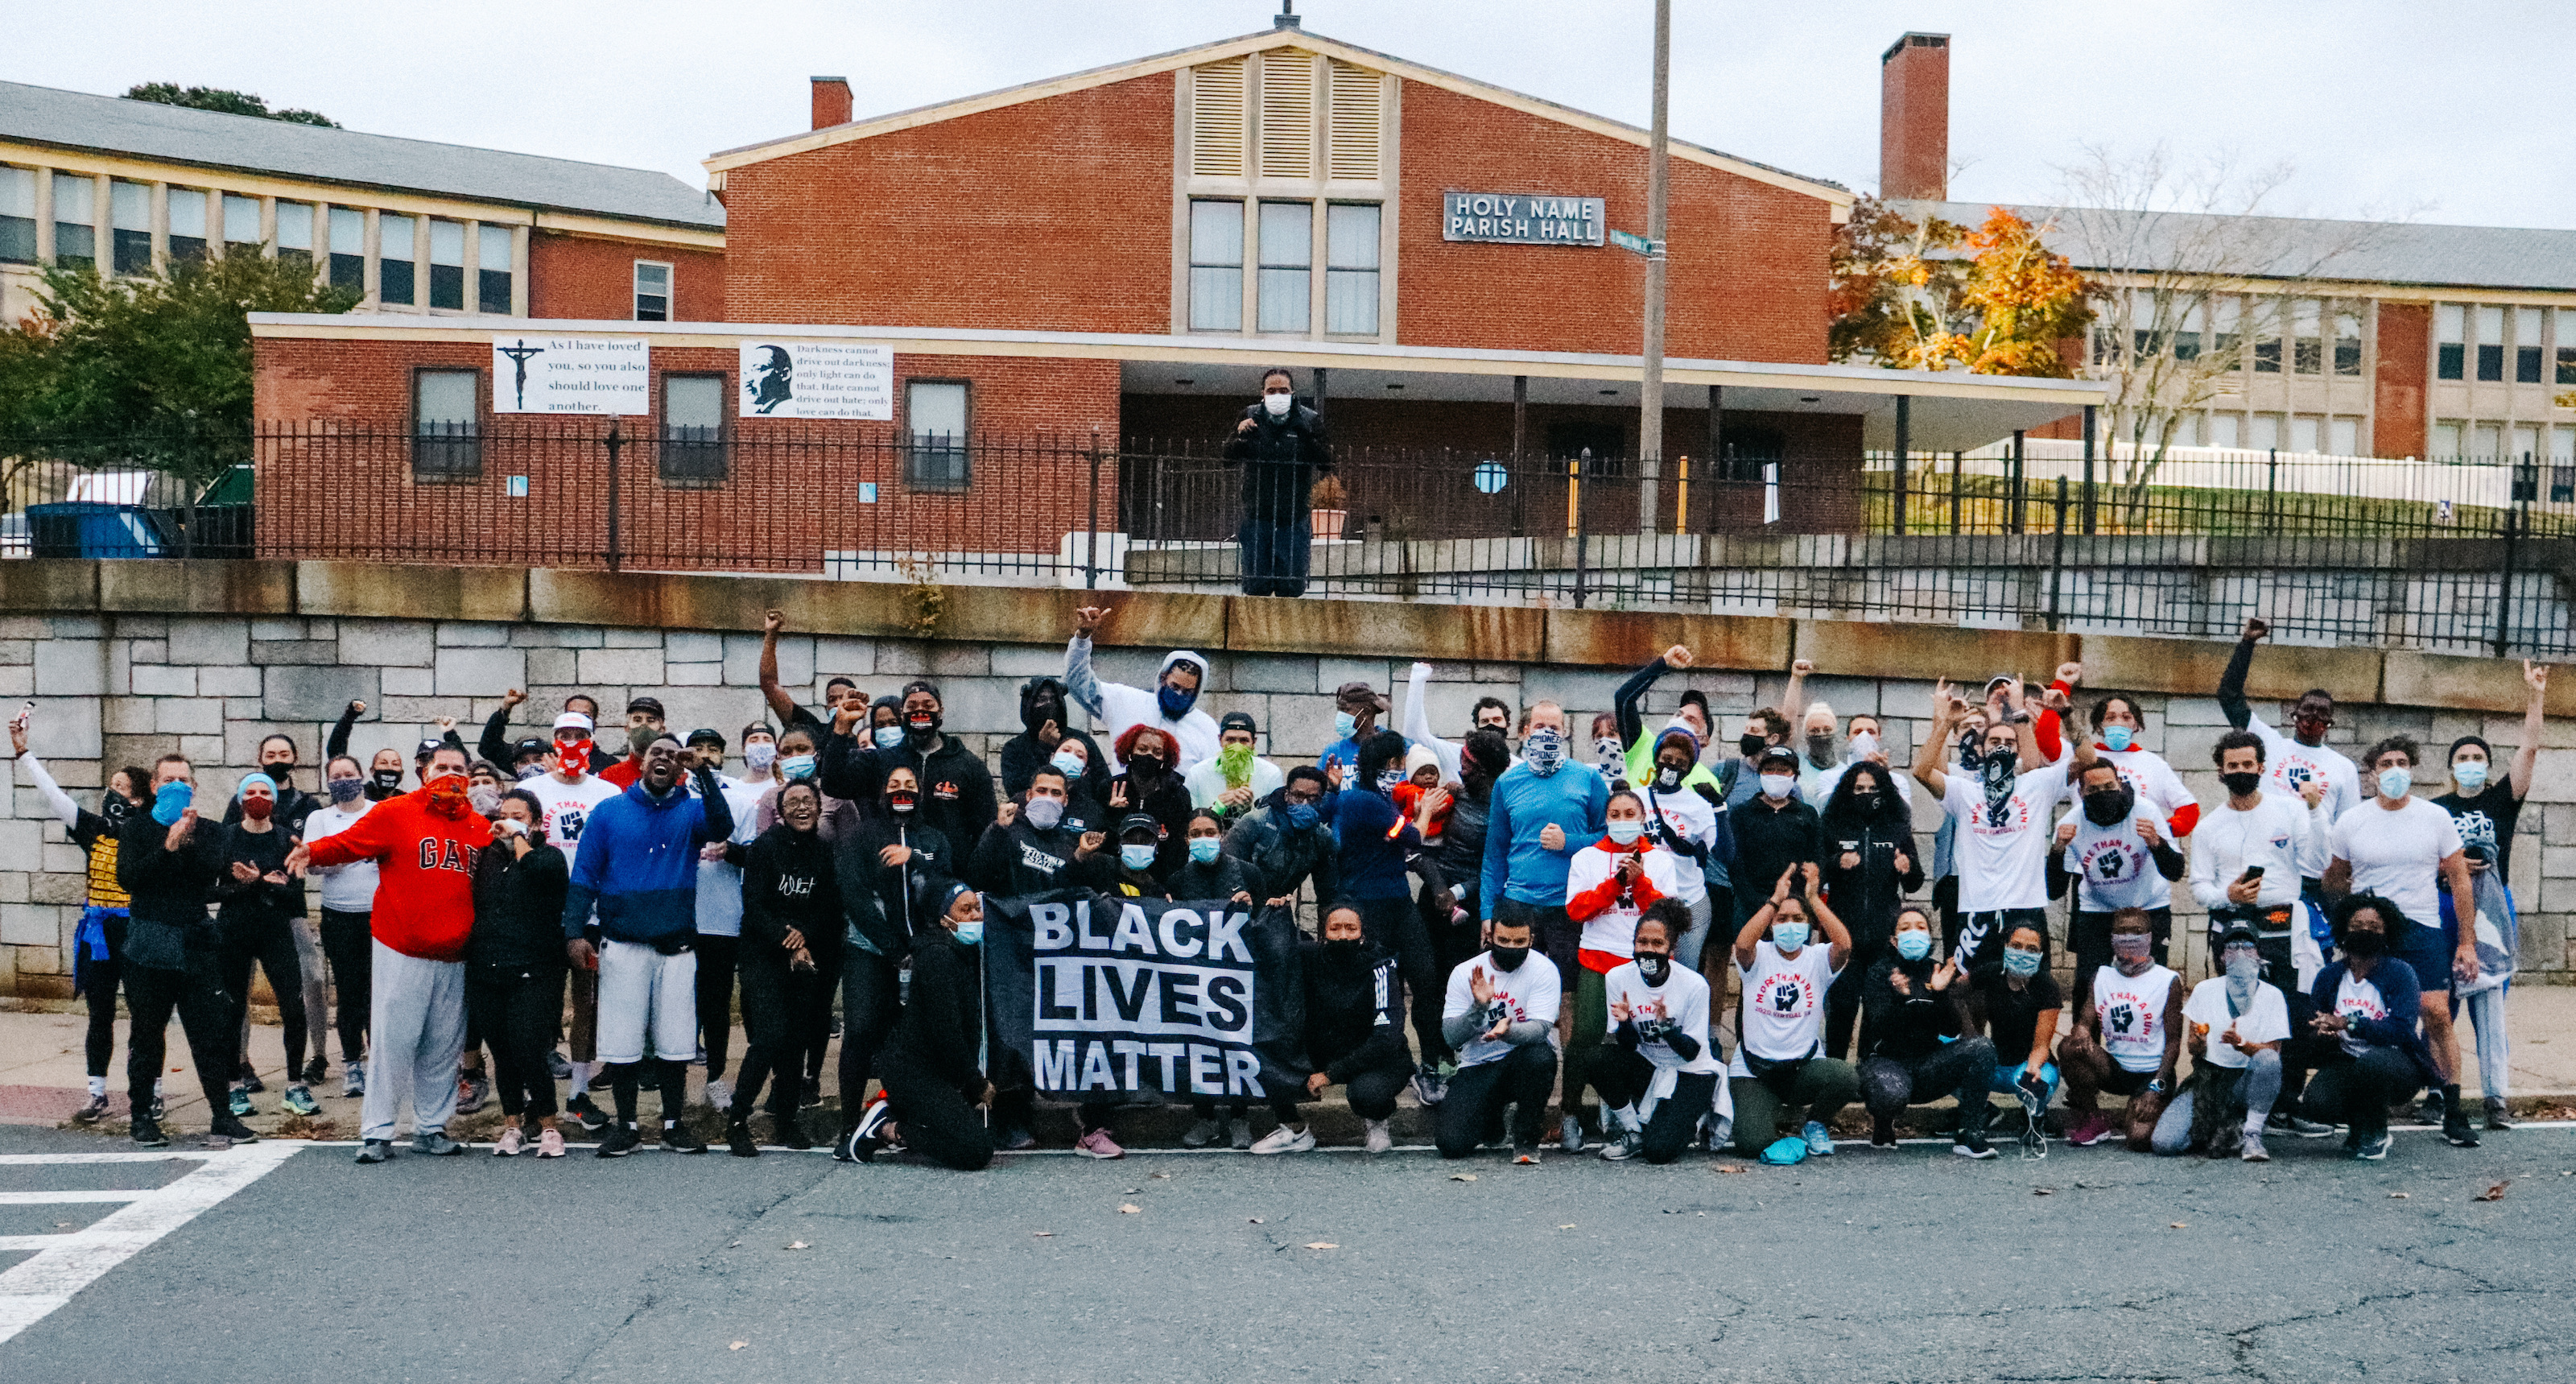 Image of Pioneer Run Crew members gathering for a Black Lives Matter event.